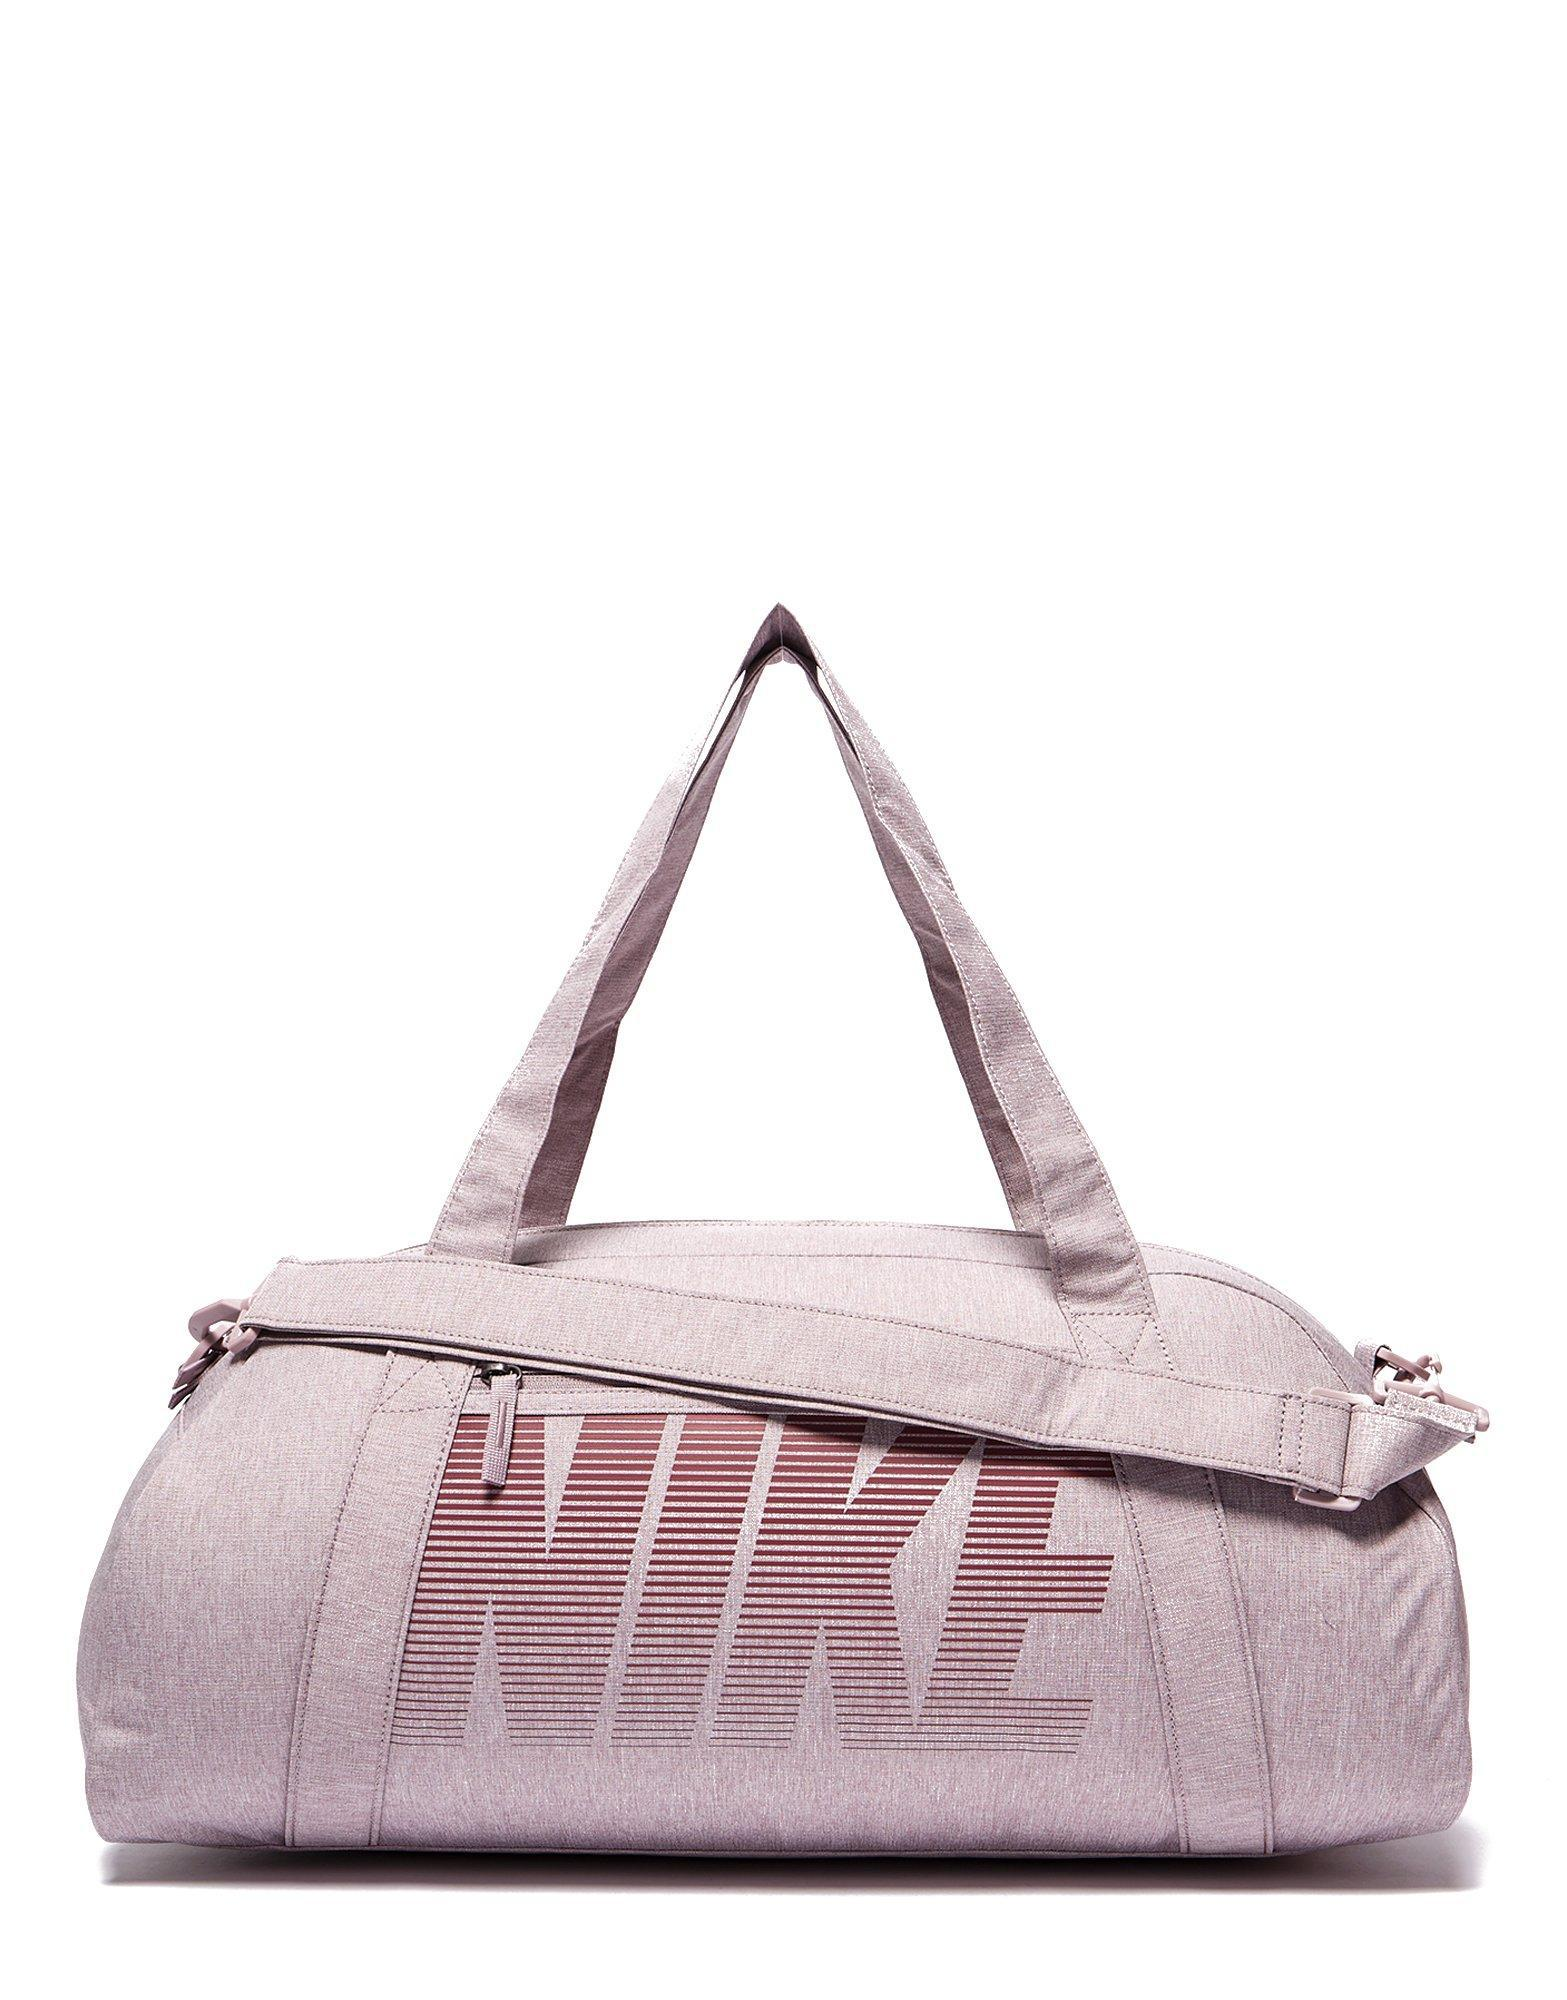 9838c45f09 Gallery. Previously sold at  JD Sports · Women s Duffel Bags ...